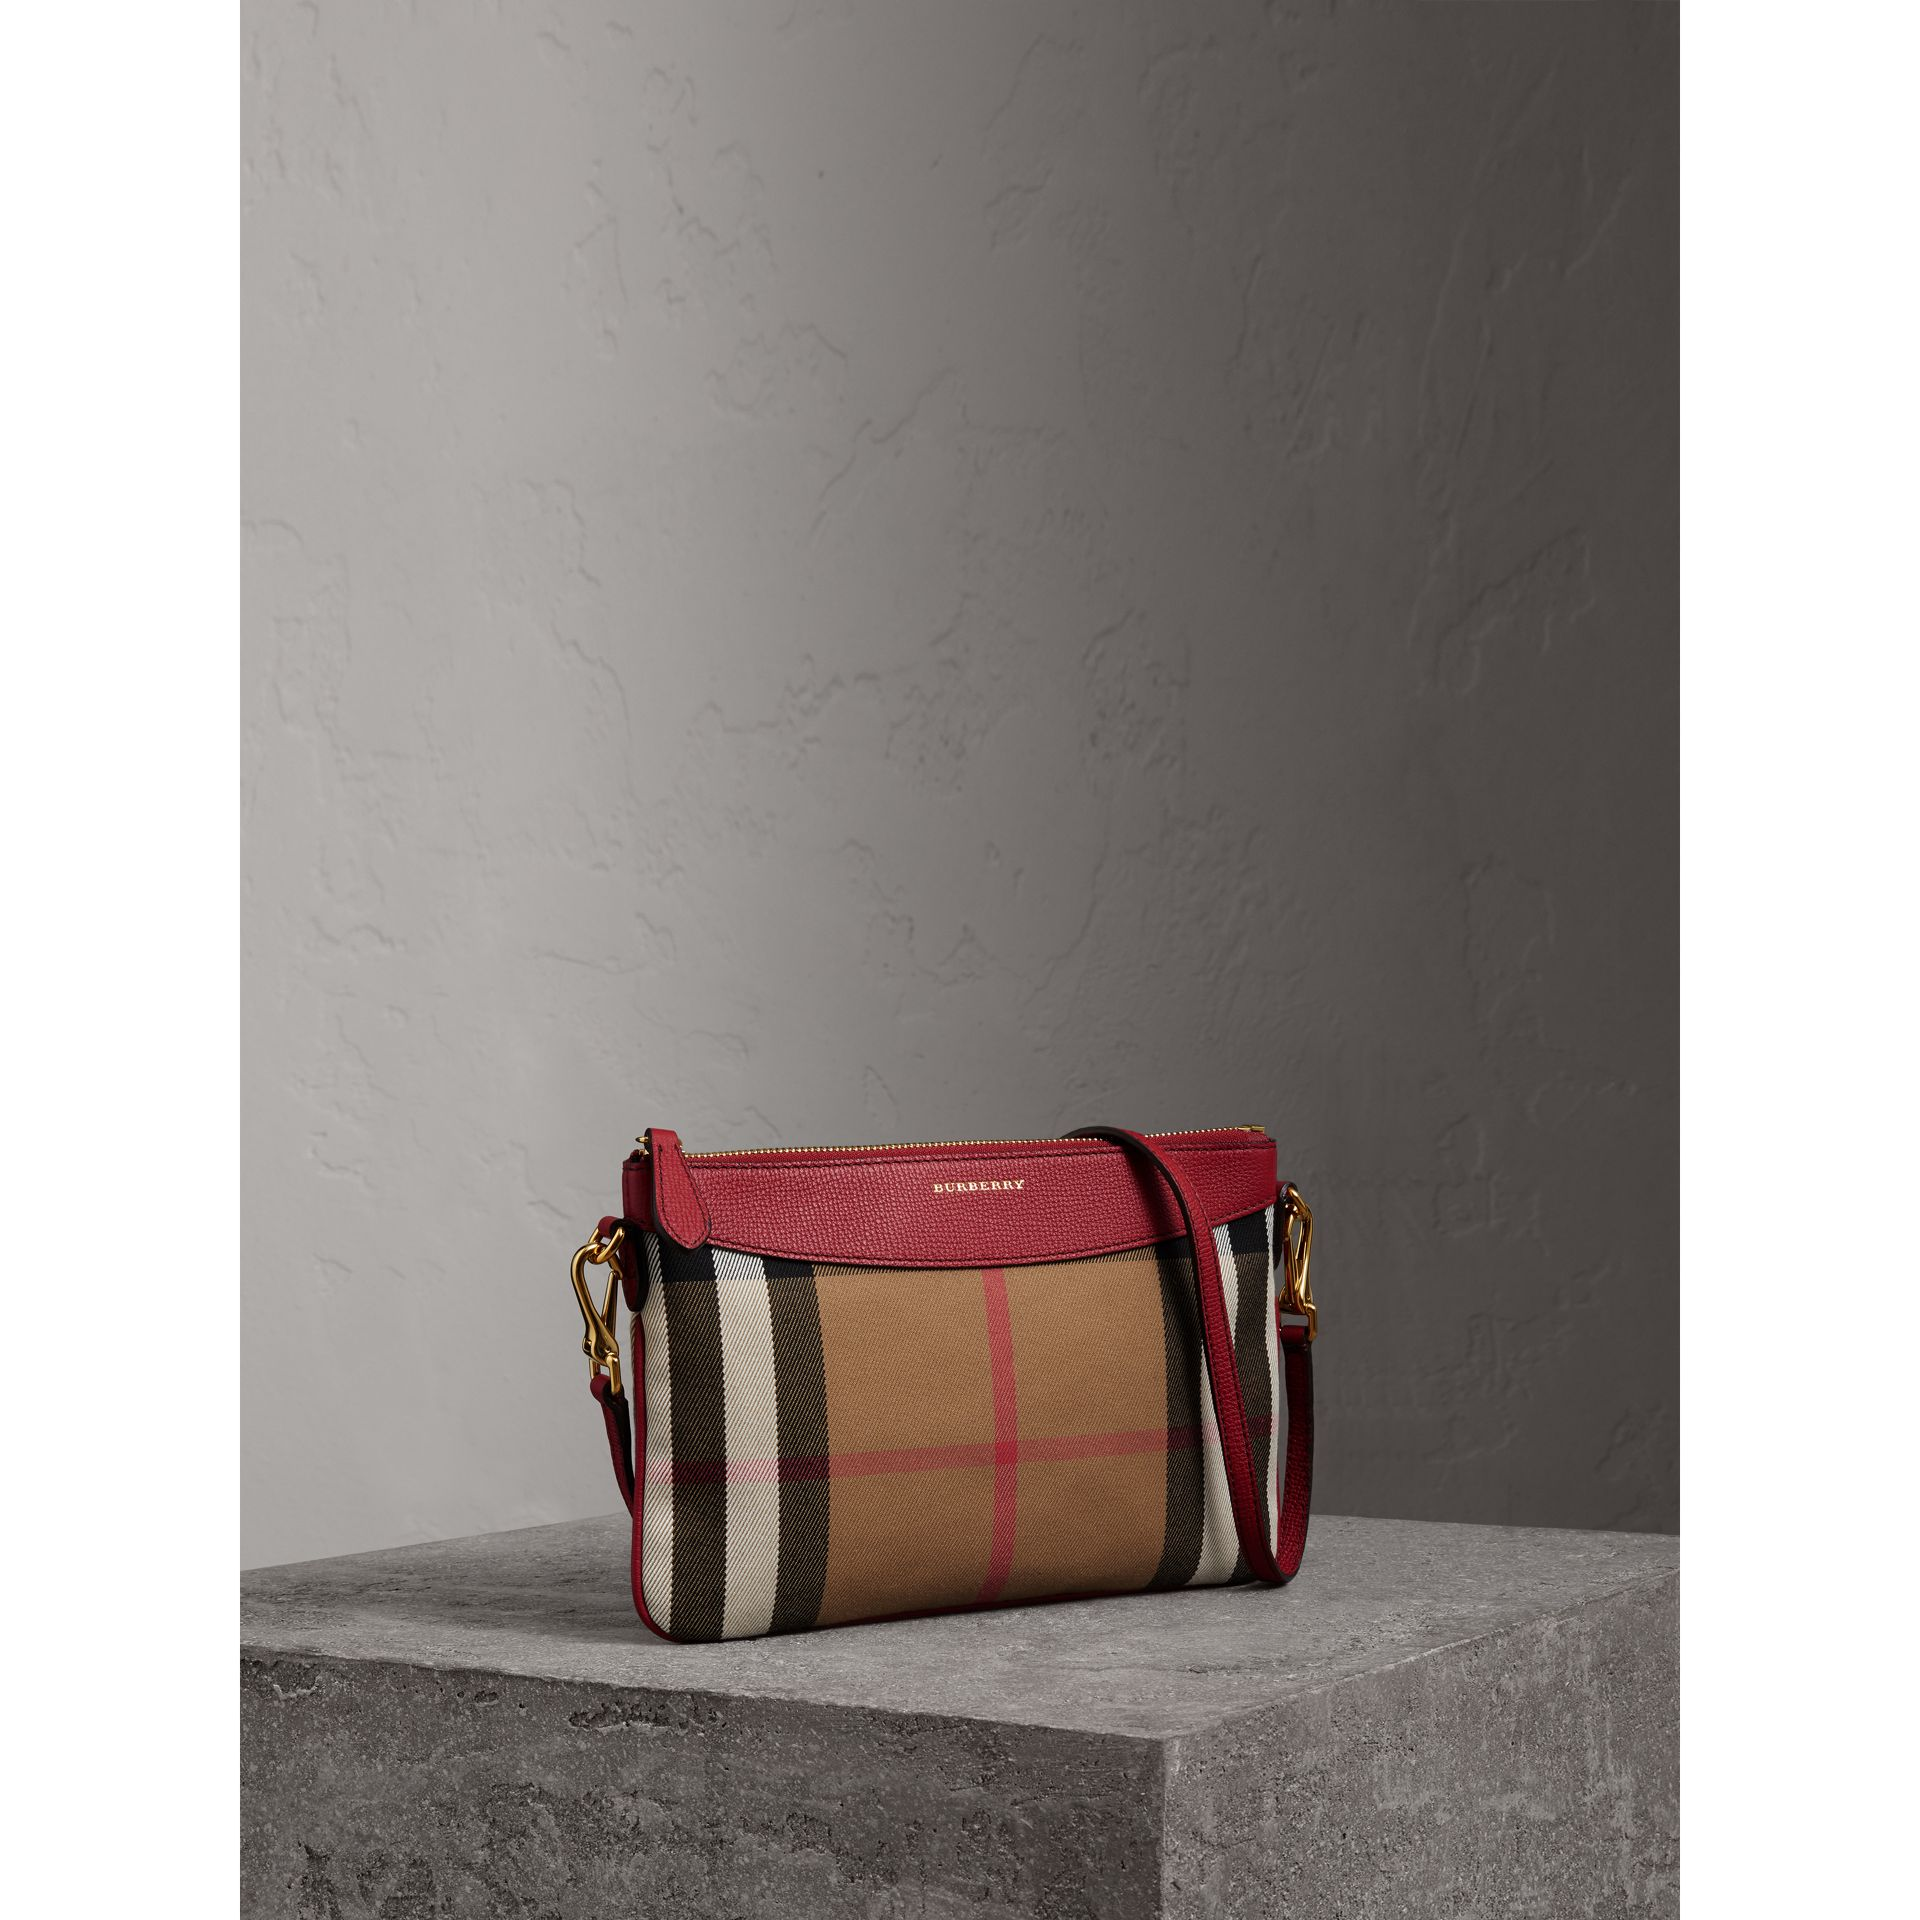 House Check and Leather Clutch Bag in Military Red - Women | Burberry - gallery image 5